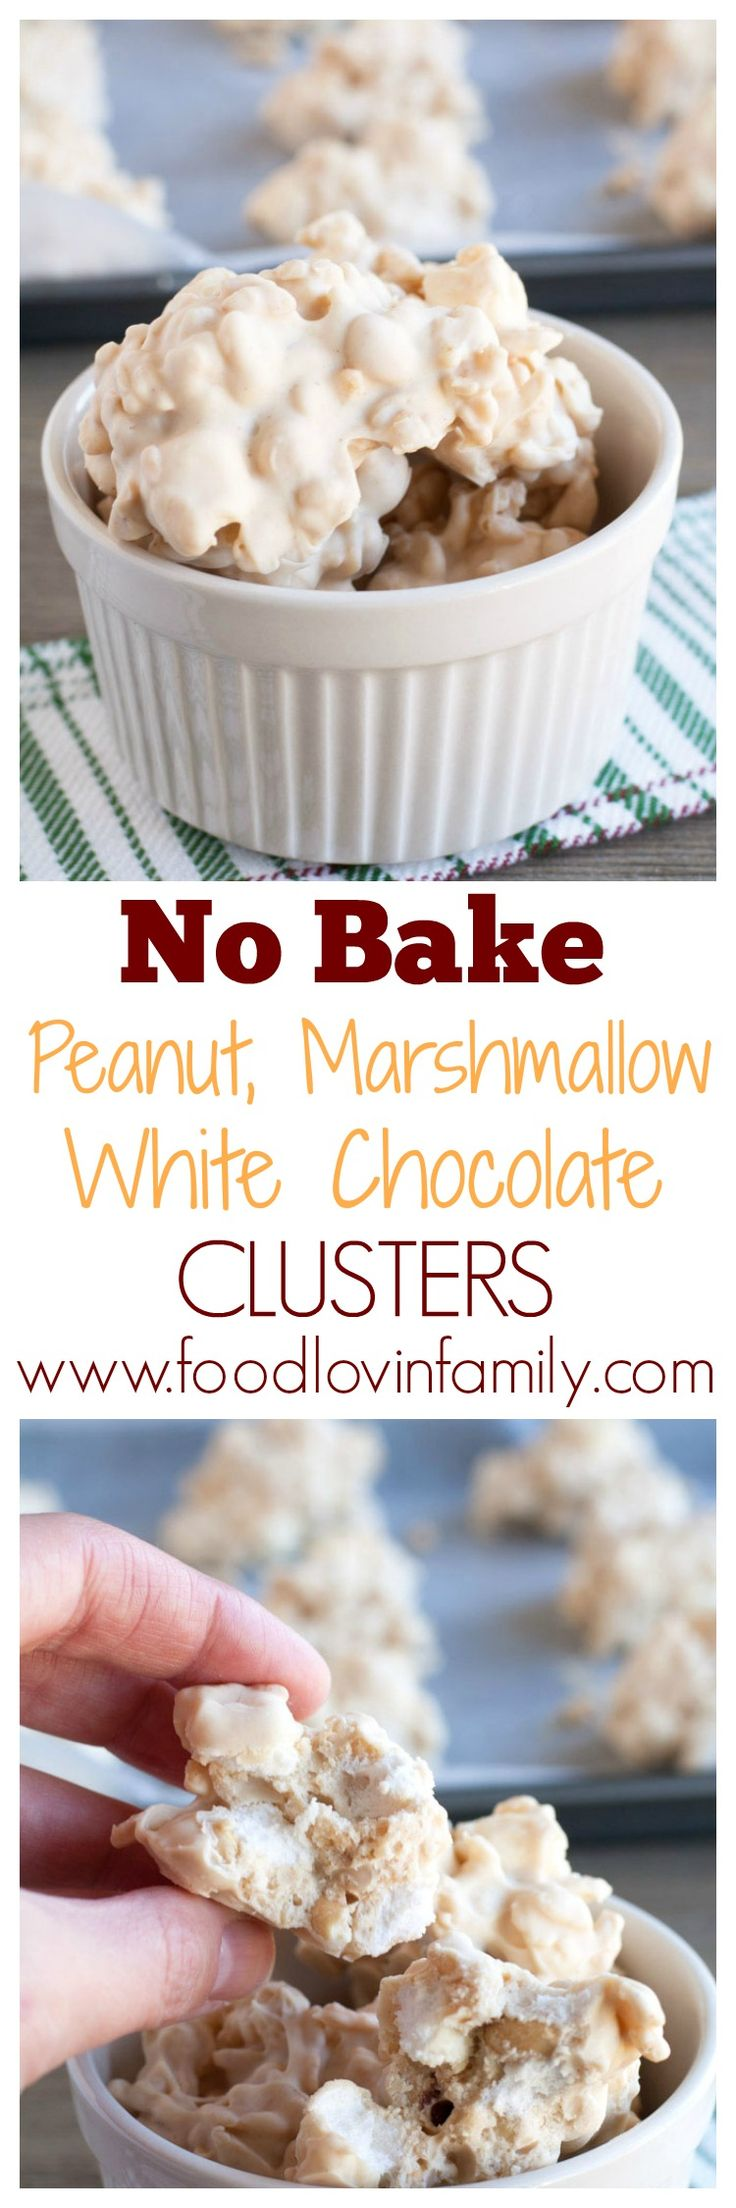 No bake peanut, marshmallow, white chocolate clusters are so easy and can be made in under 5 minutes. They are one of my ALL TIME favorite desserts.| http://www.foodlovinfamily.com/no-bake-peanut-marshmallow-white-chocolate-clusters/